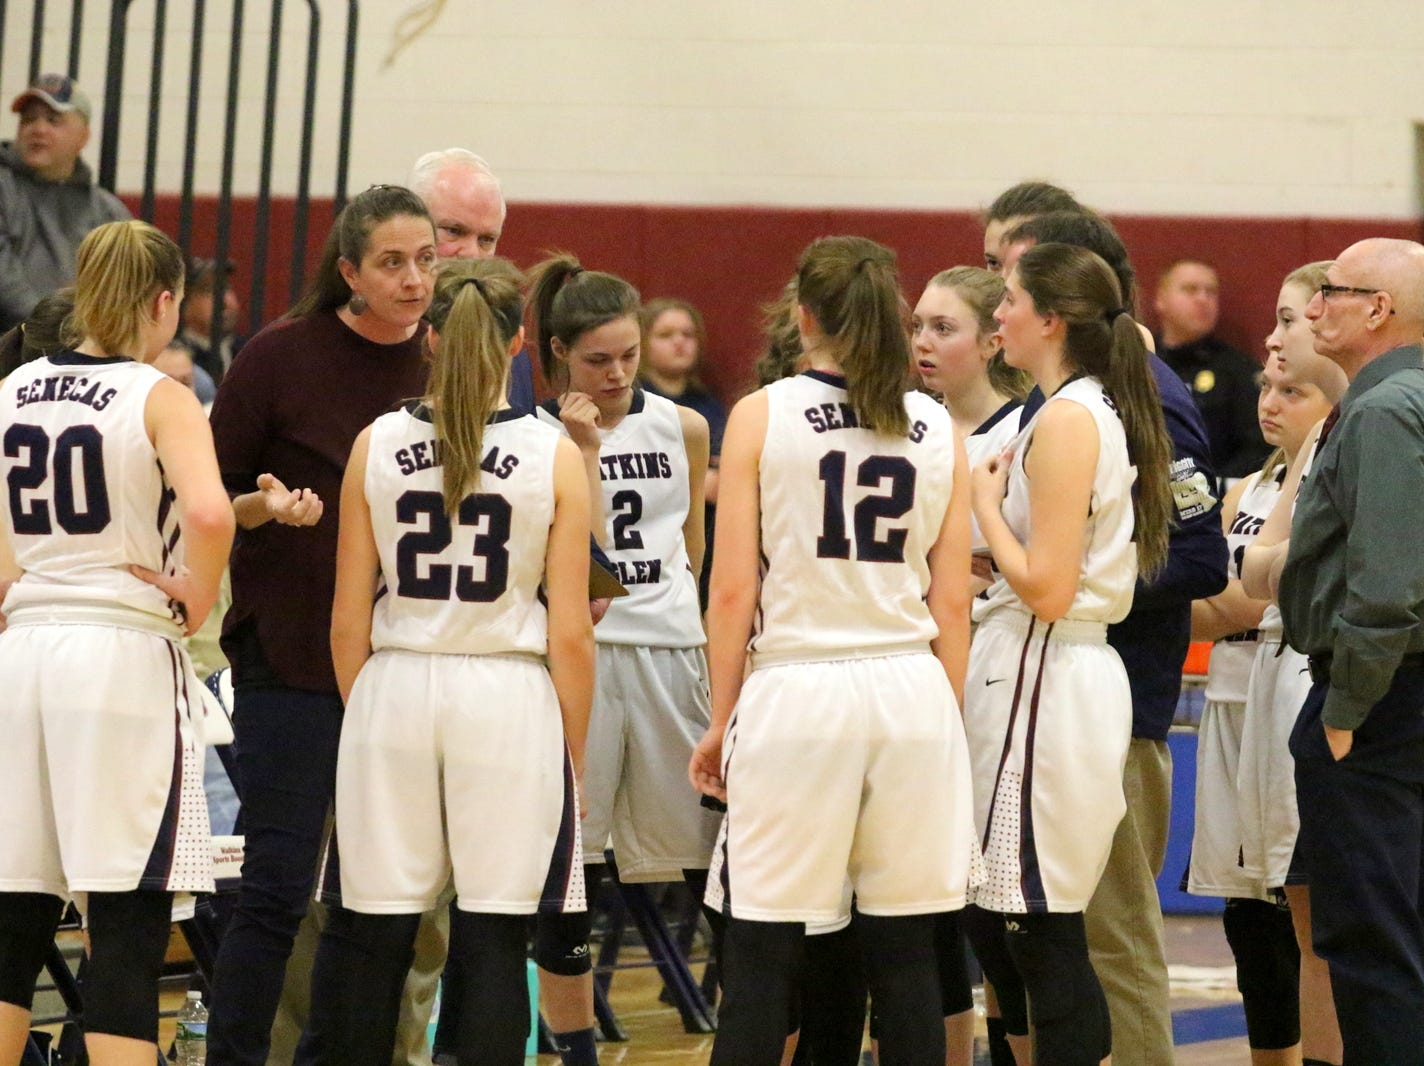 Watkins Glen coach Alicia Learn talks to her team during a 61-35 win over Delhi in a Section 4 Class C quarterfinal Feb. 22, 2019 at Watkins Glen High School.